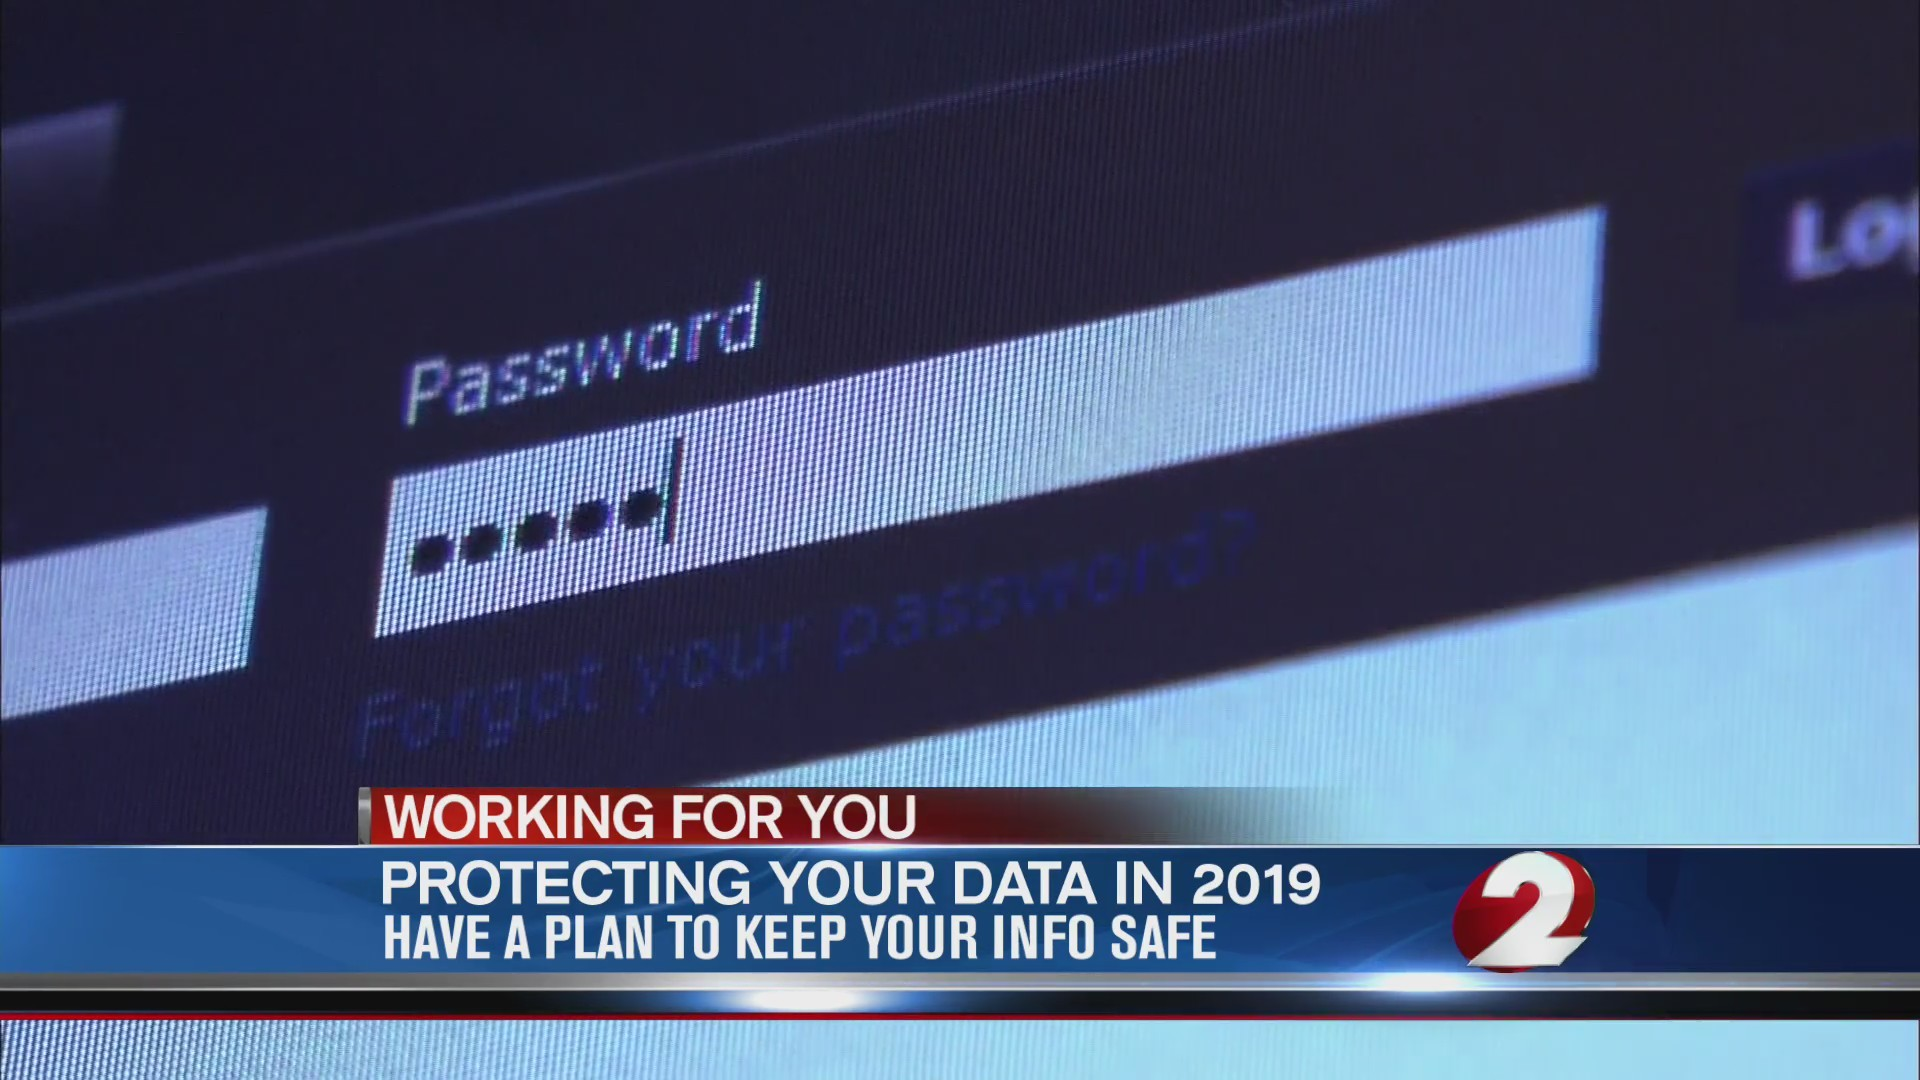 Protecting your data in 2019